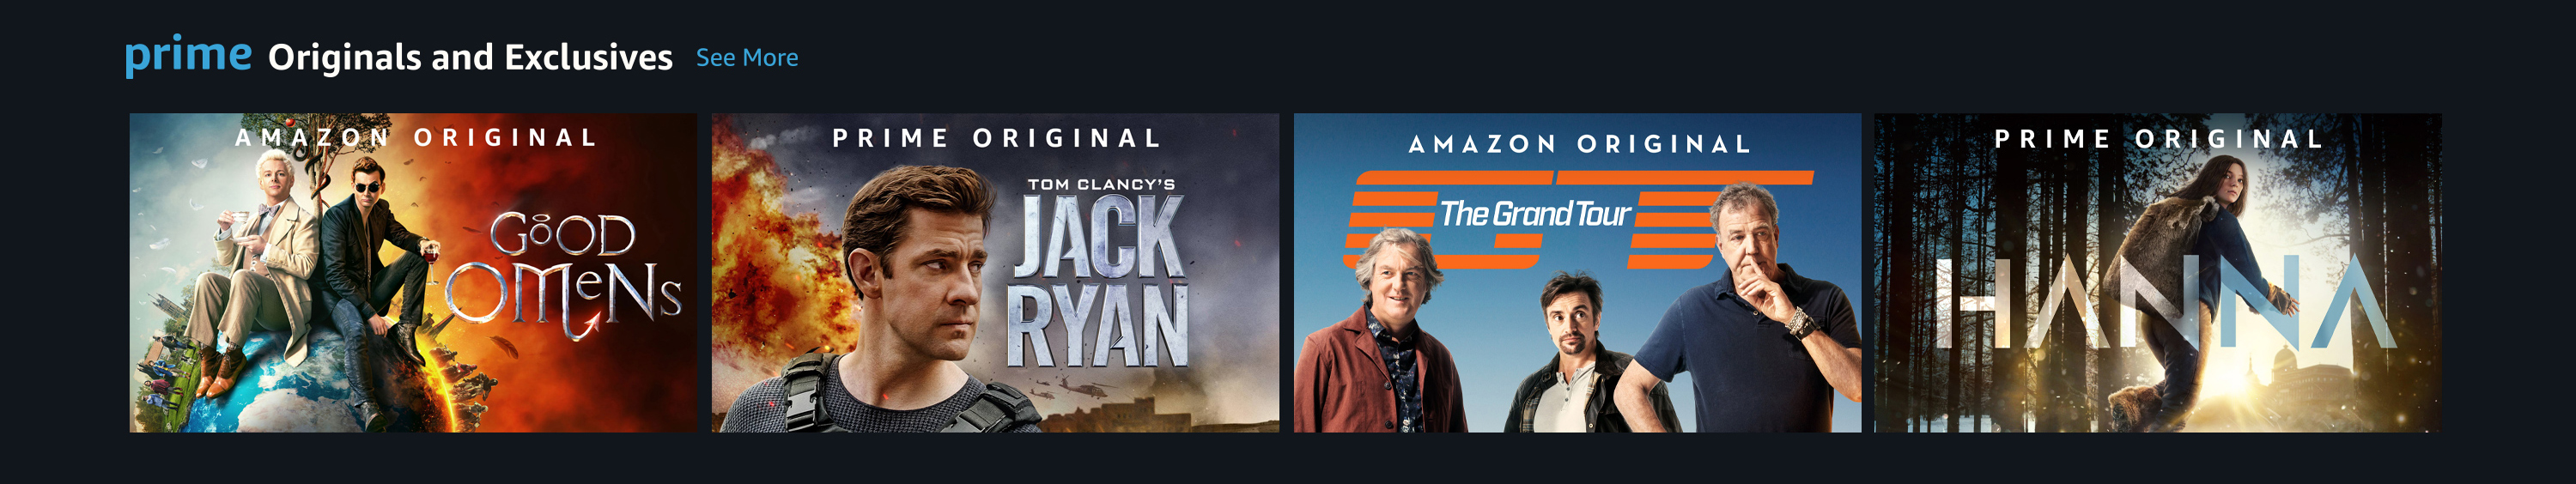 Watch great shows on Prime Video now